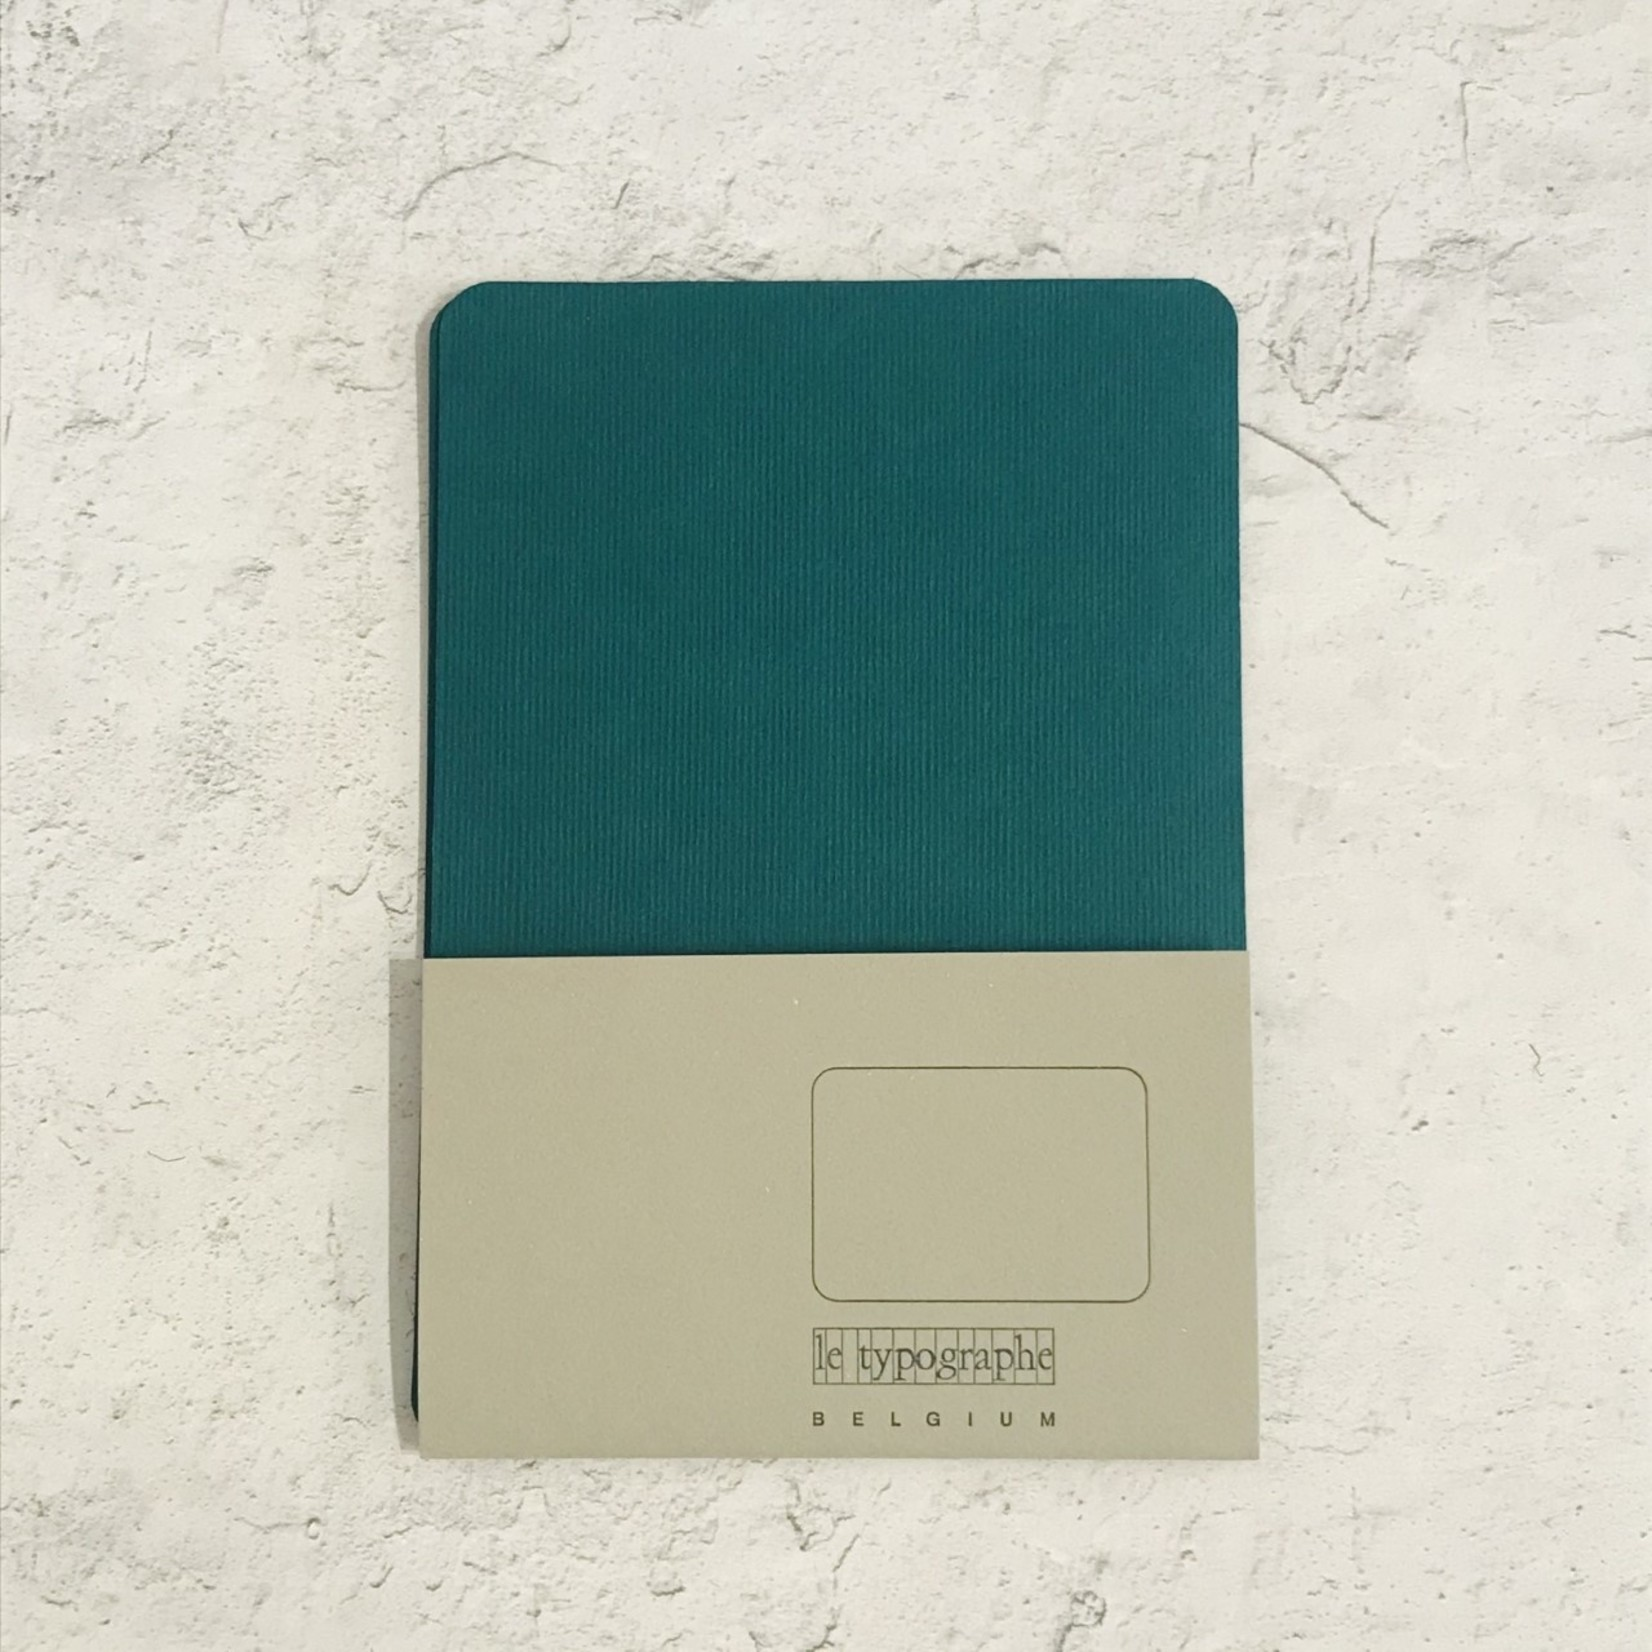 Le Typographe Le Typographe Rounded Corner Cards- Forest Green